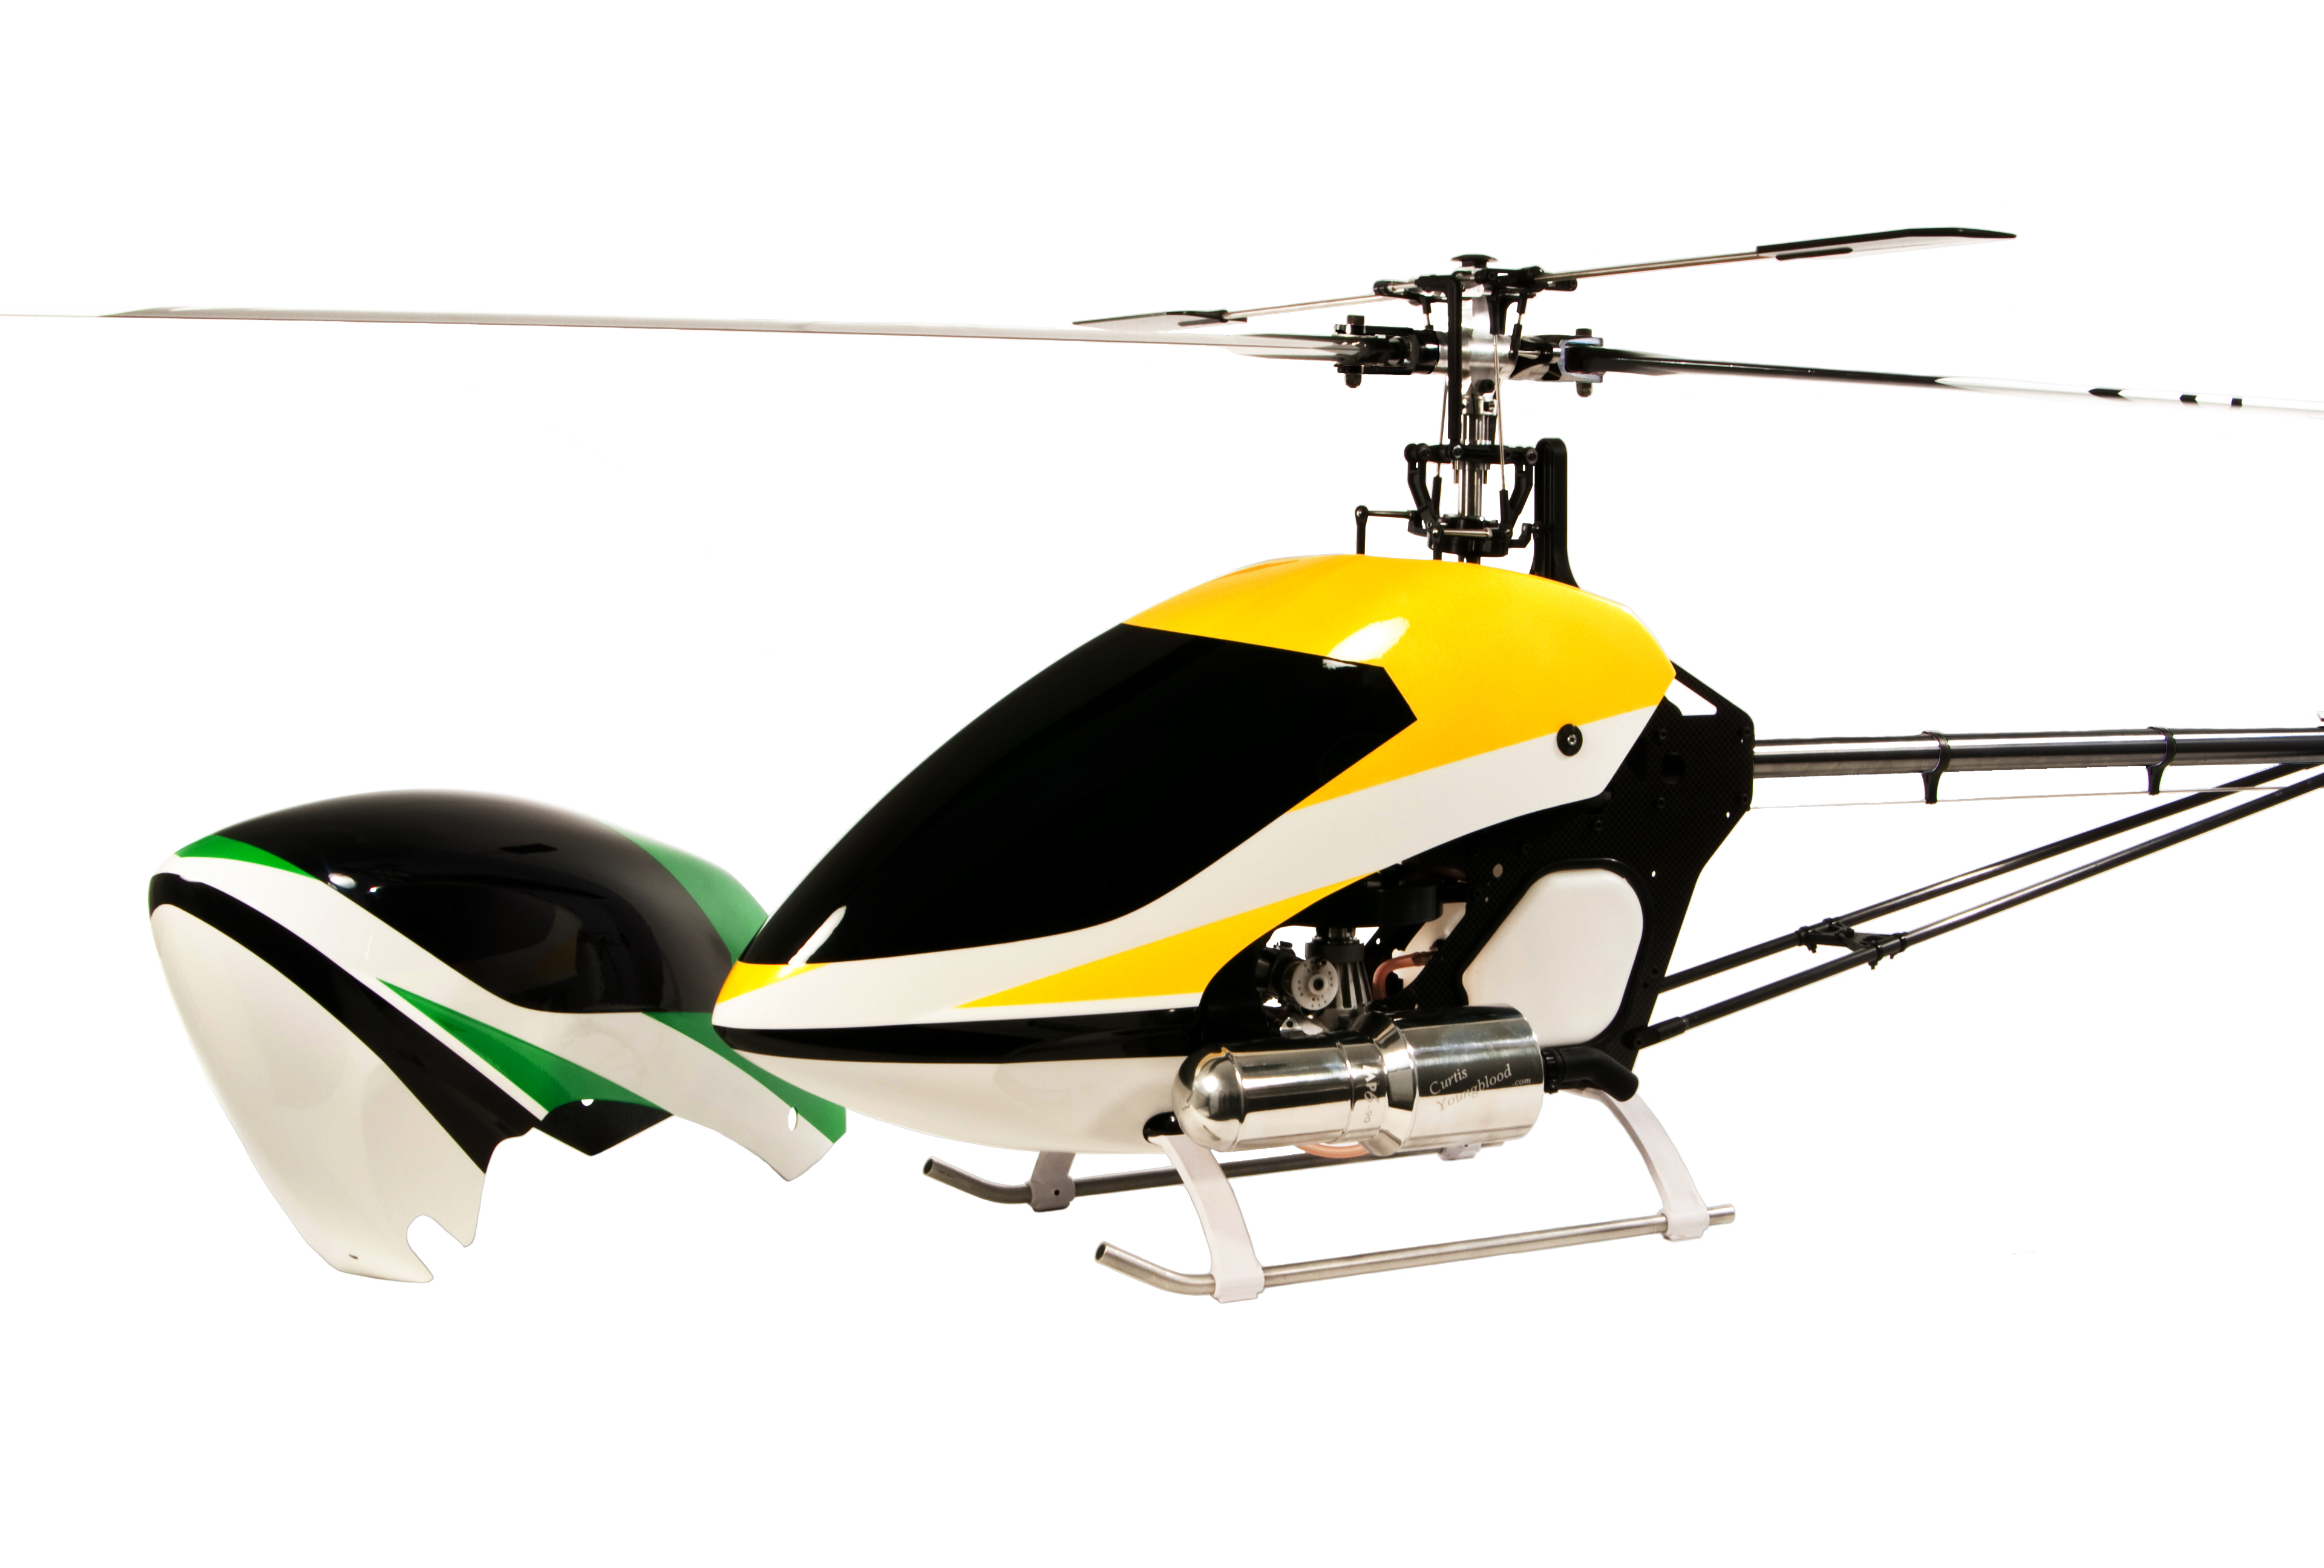 ND-YR7-AS1117 - Painted Canopy-Yellow R7